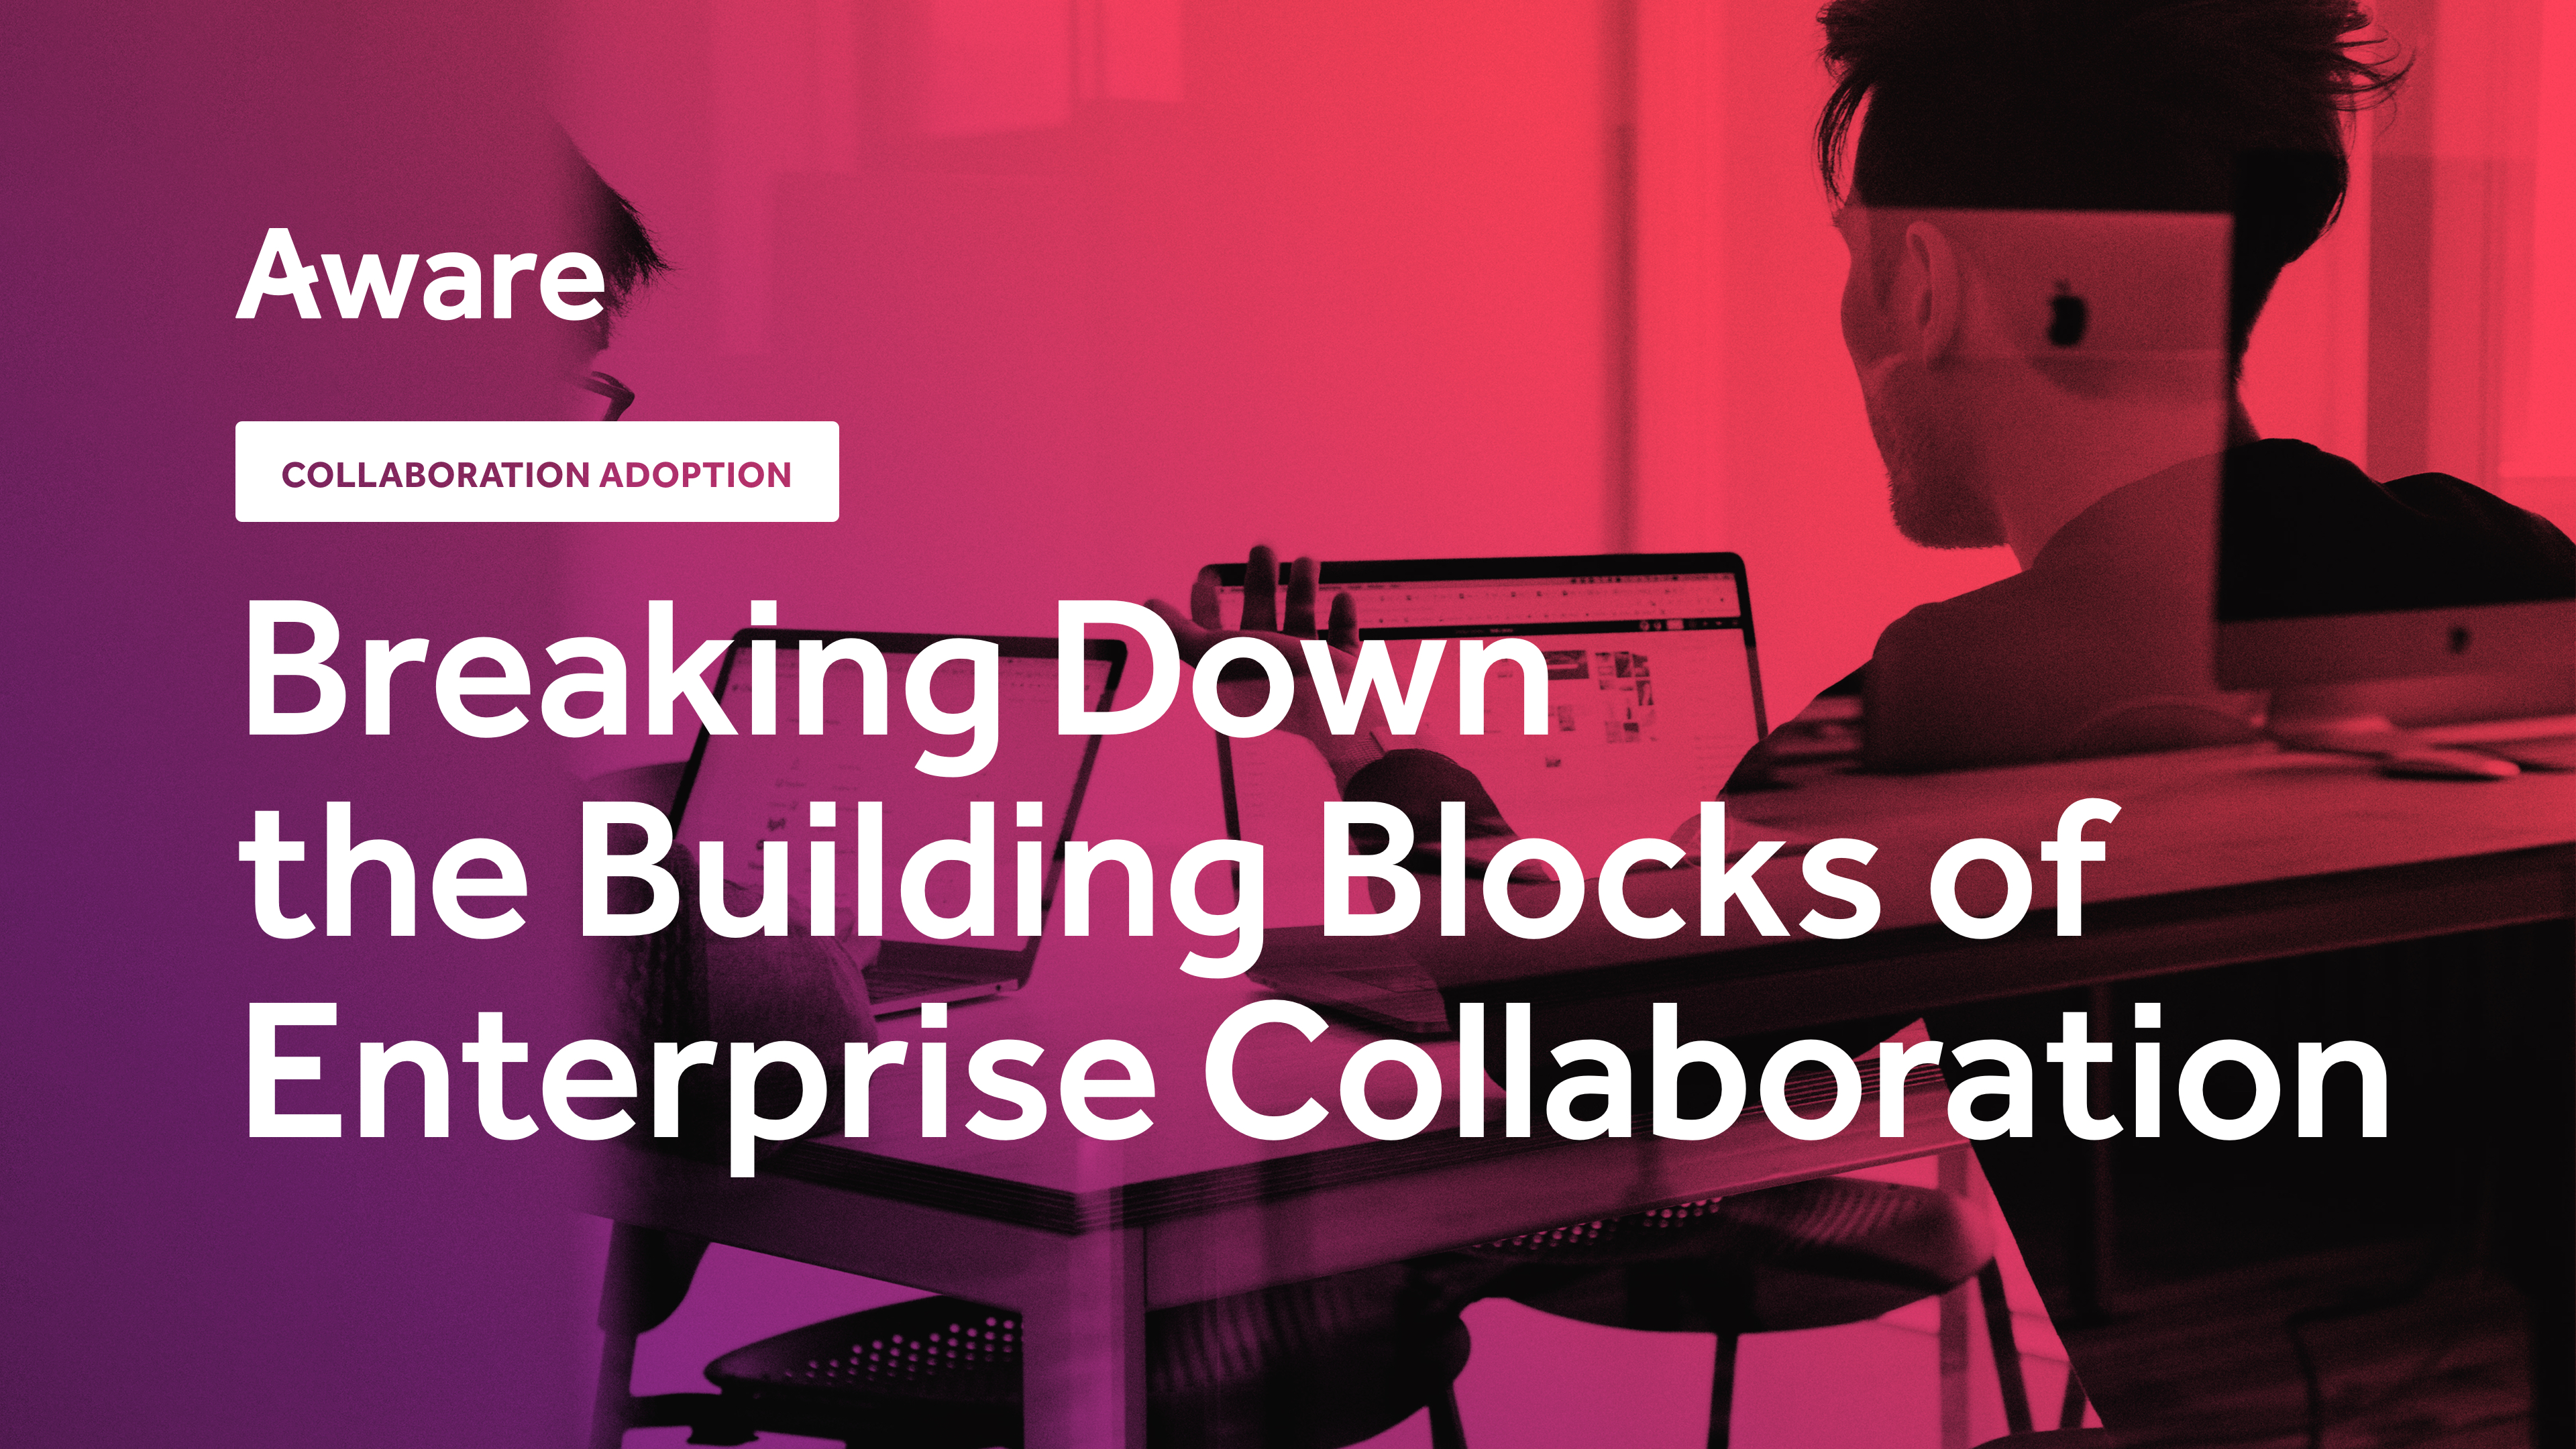 Breaking Down the Building Blocks of Enterprise Collaboration